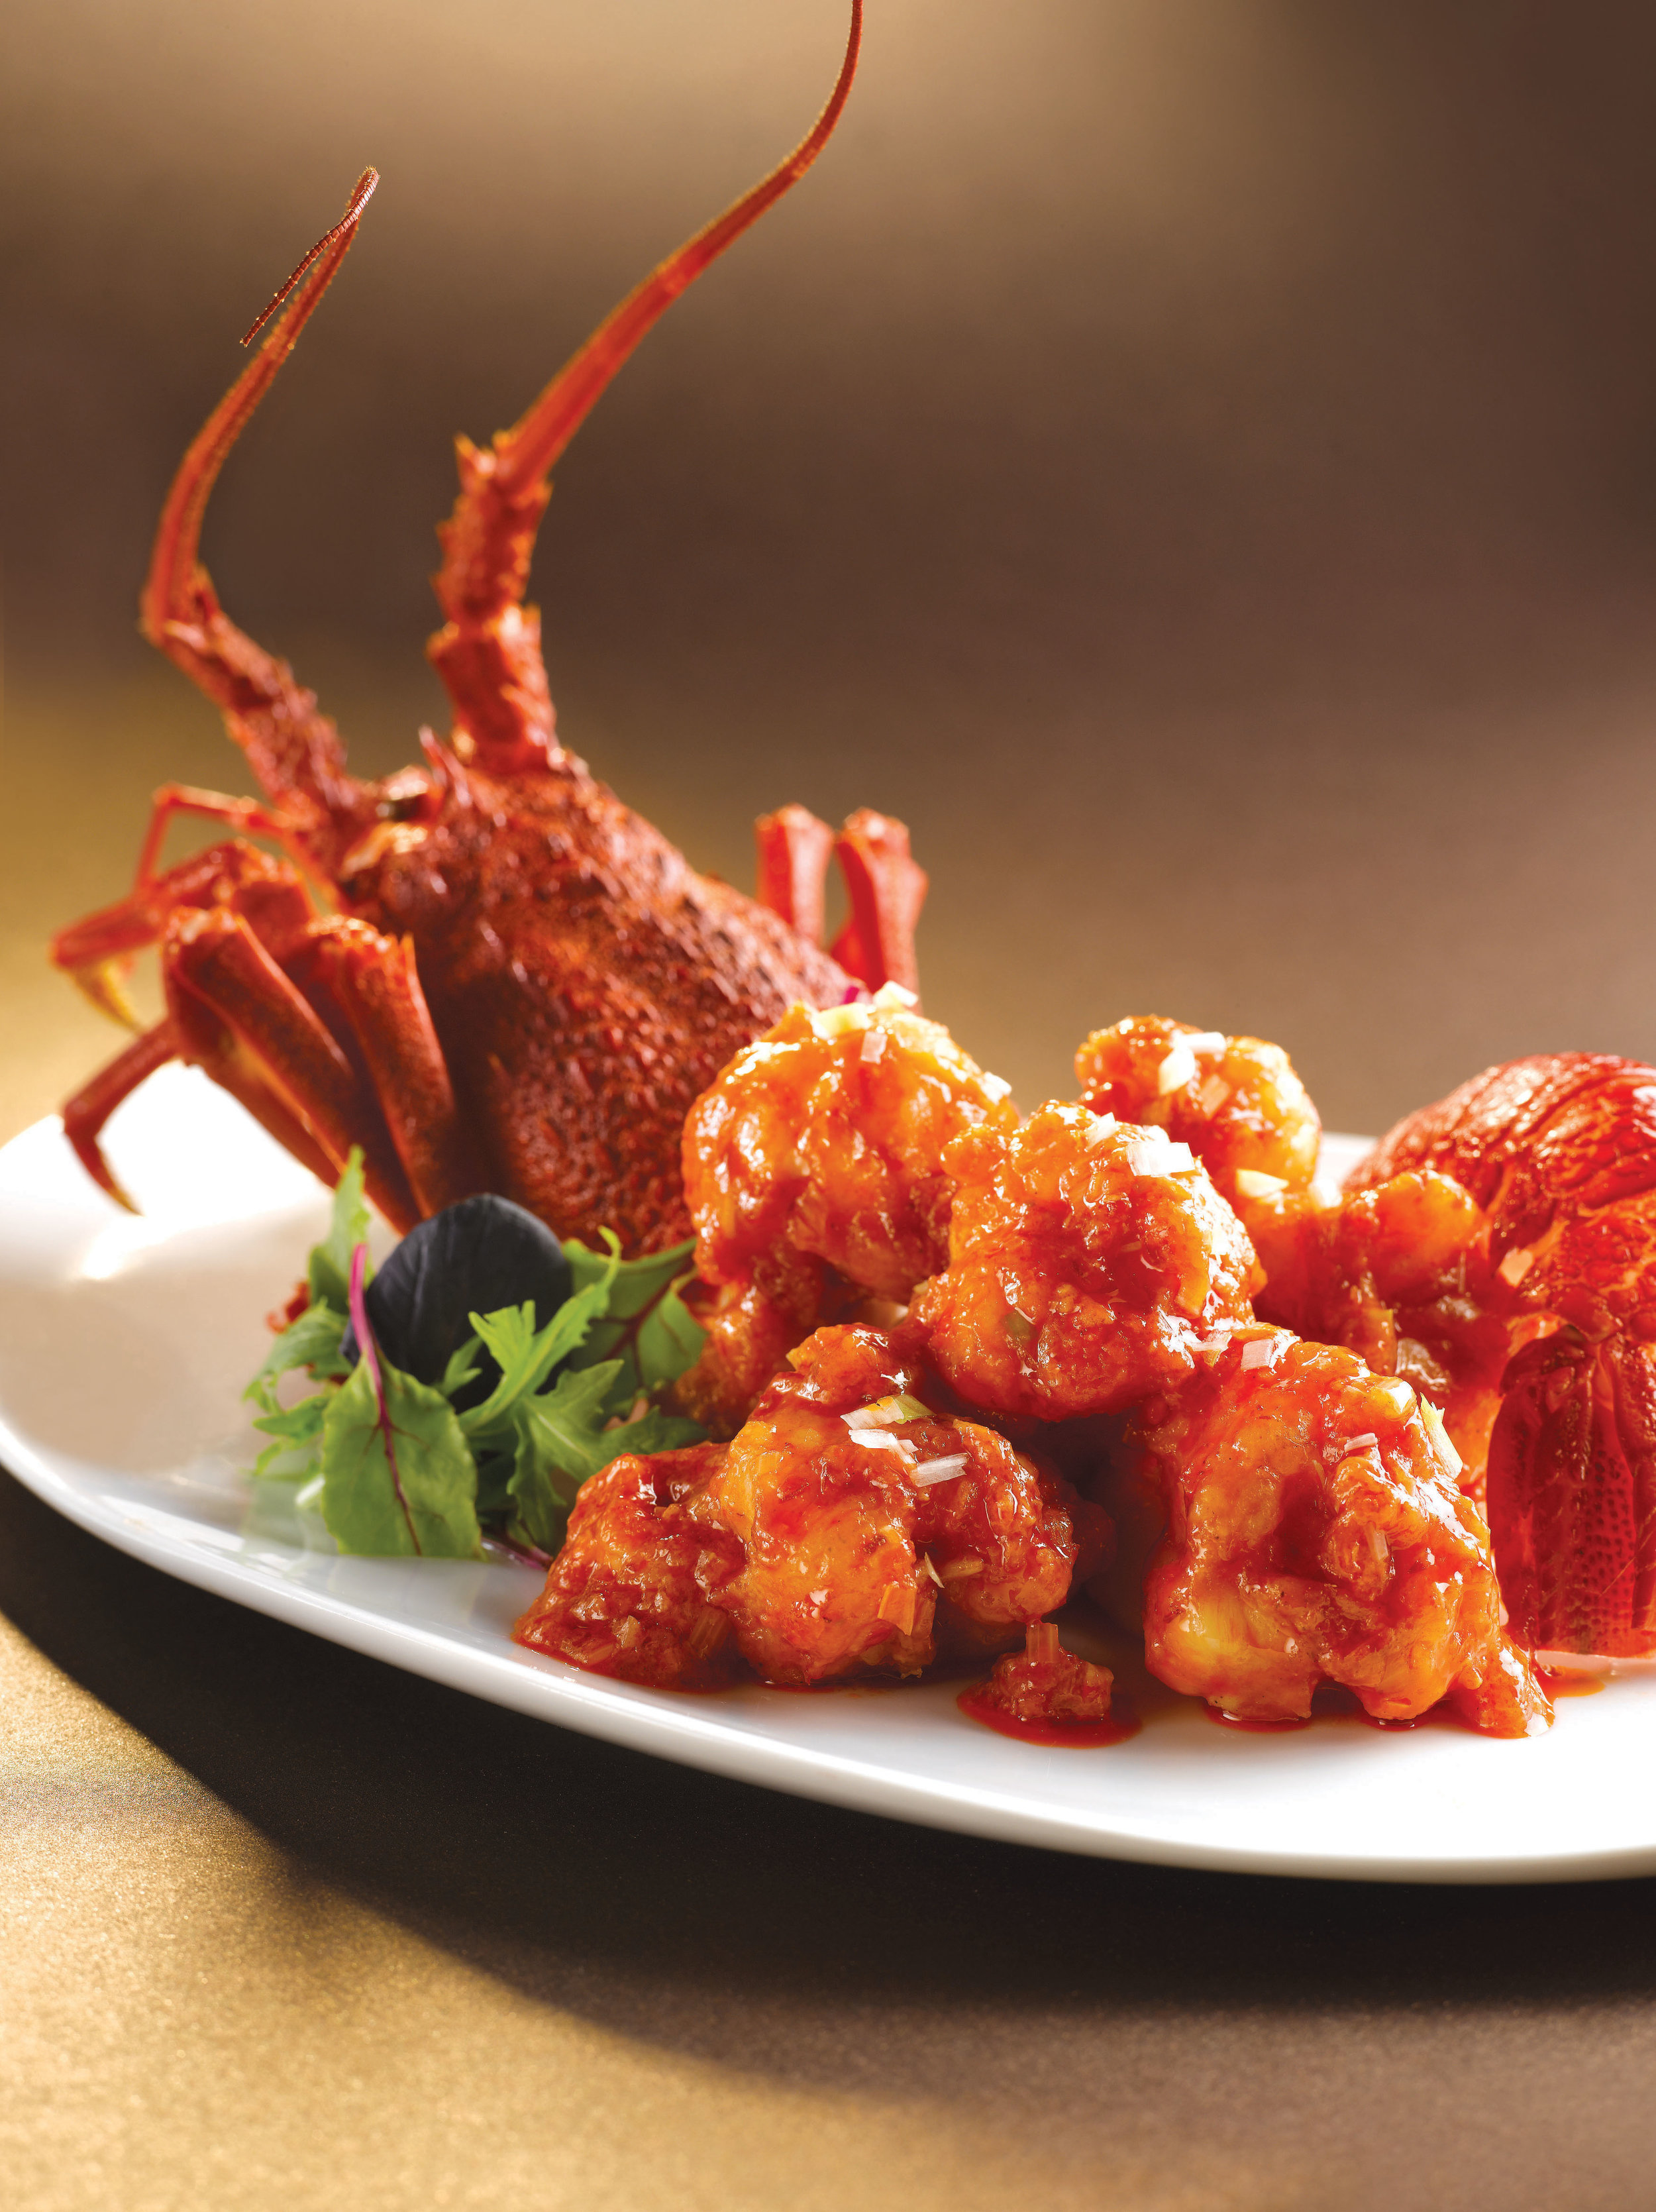 Stir-fried Whole Live Lobster with Chilli Sauce